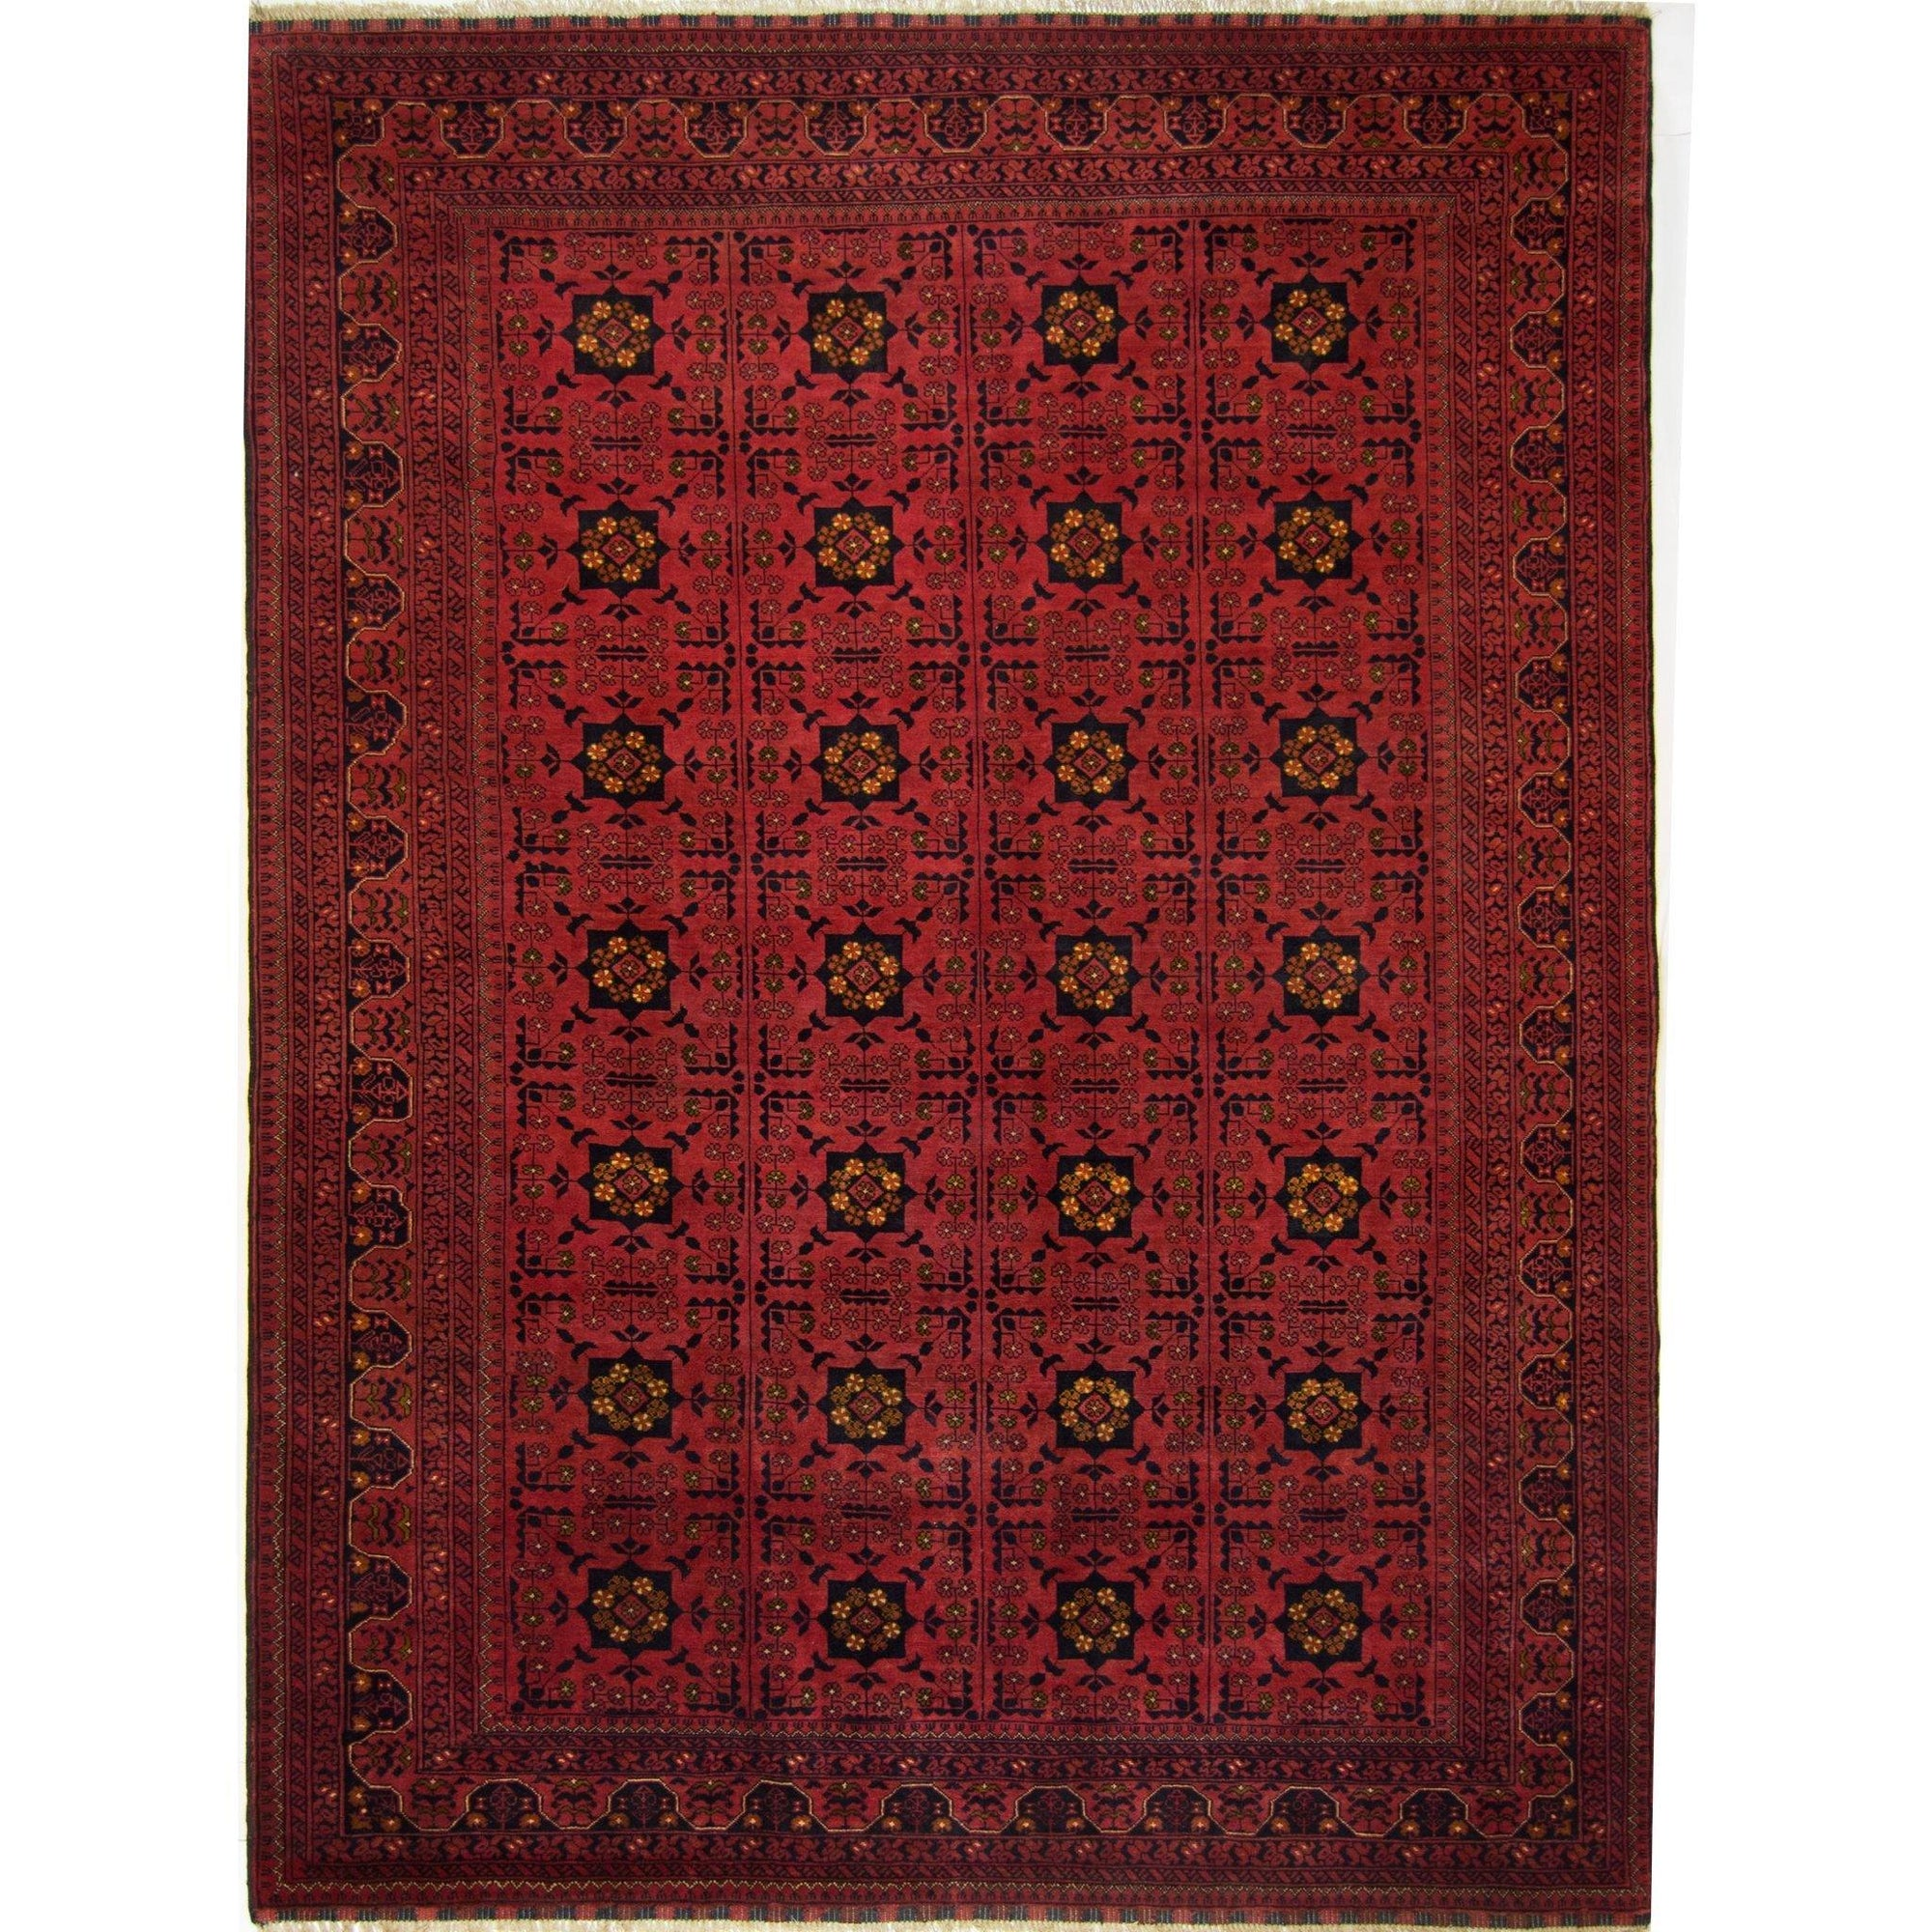 Khal Mohammadi Persian-Rug | House-of-Haghi | NewMarket | Auckland | NZ | Handmade Persian Rugs | Hand Knotted Persian Rugs